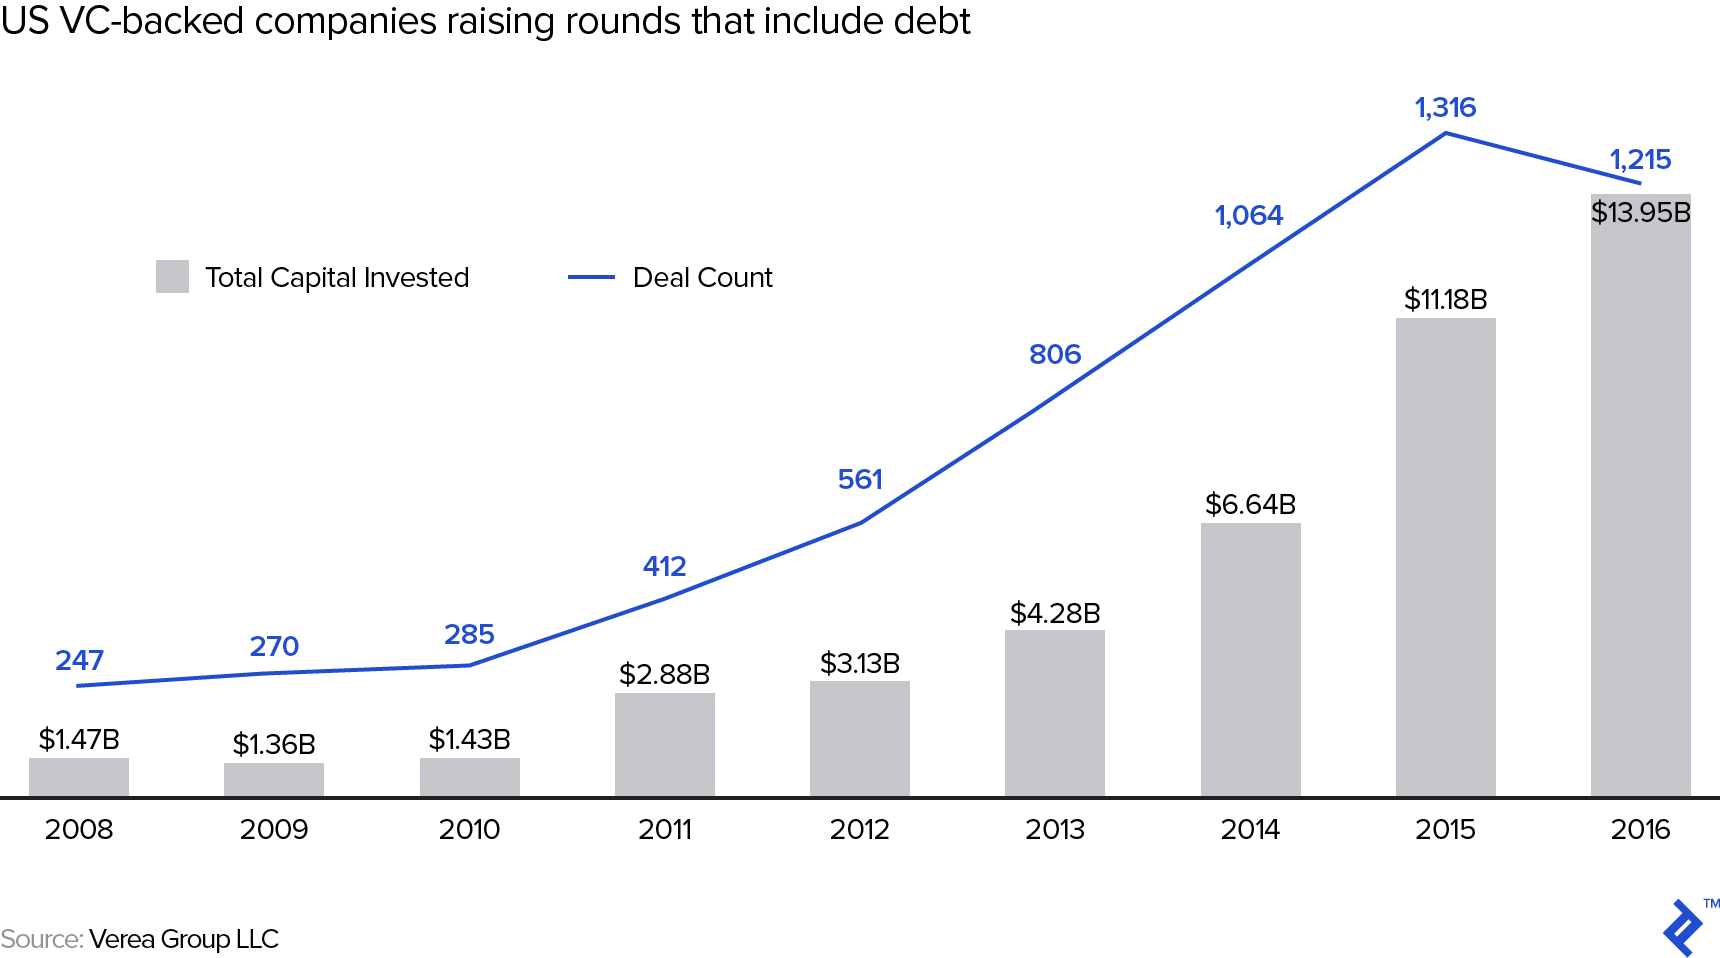 US VC-backed companies raising rounds that include debt